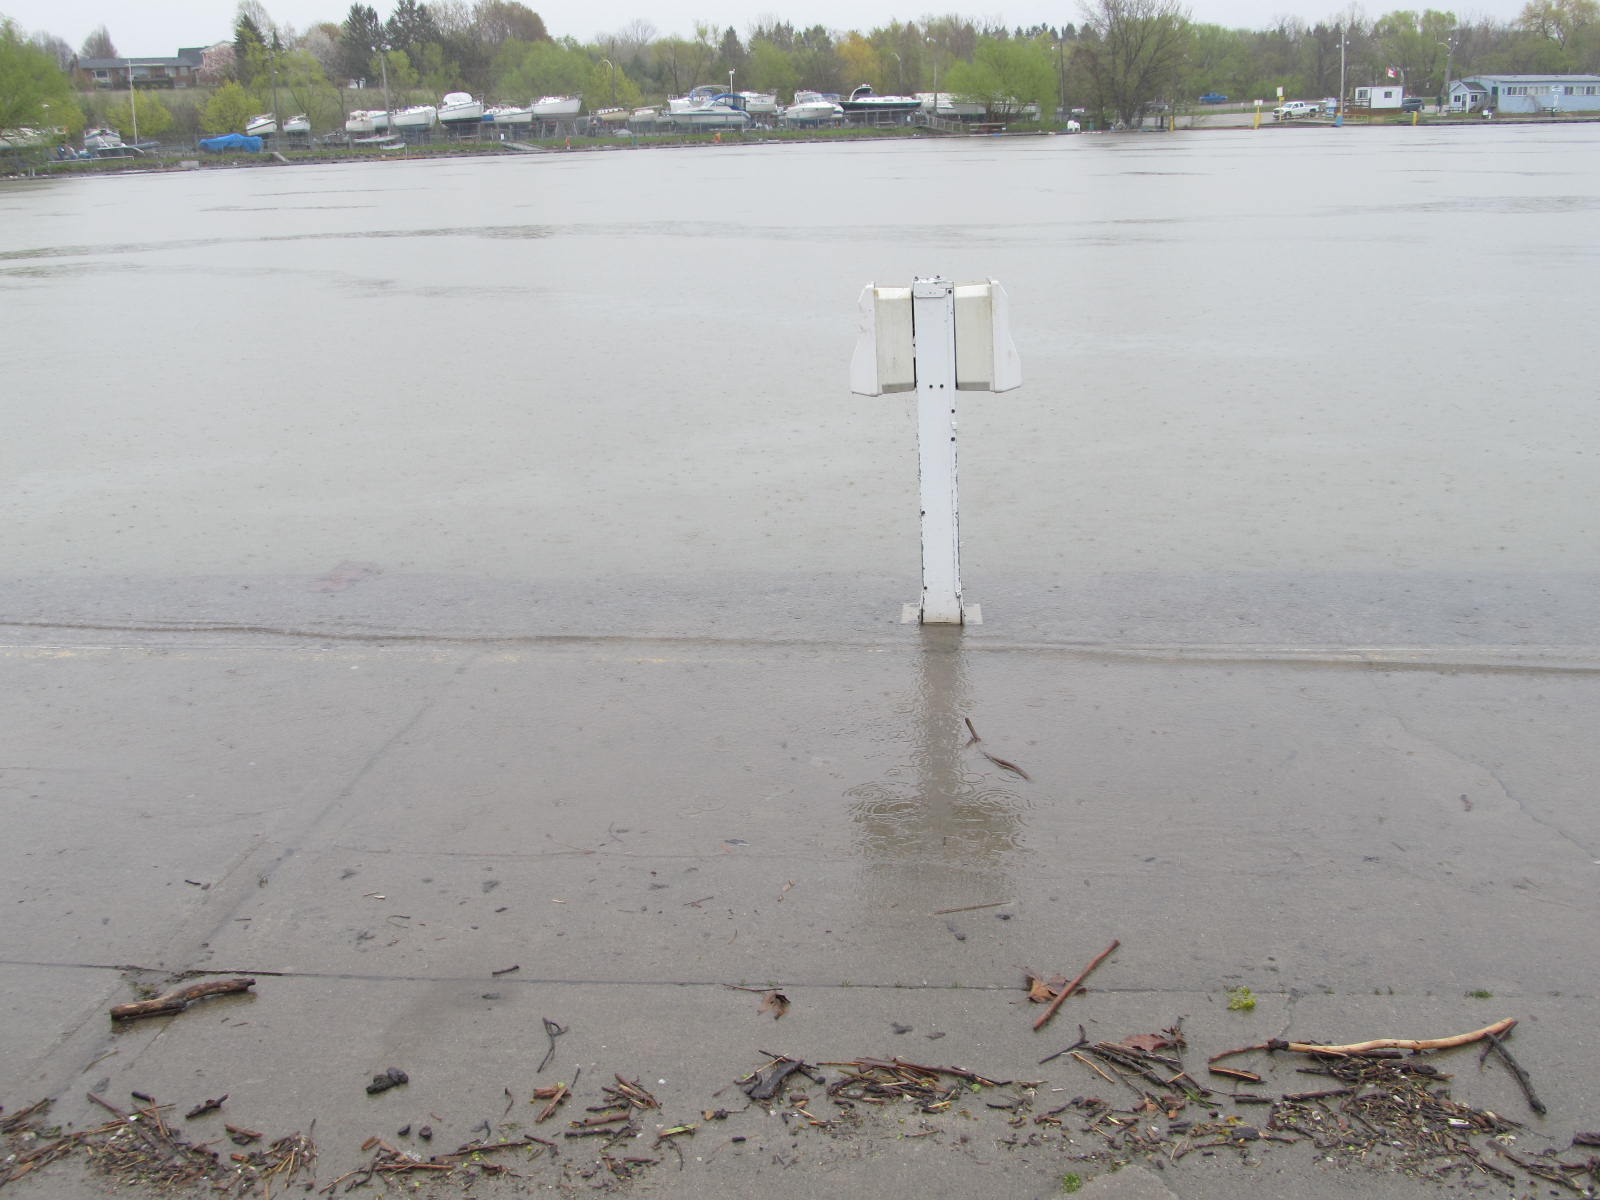 Lake  ON water level at Port Dalhousie St.Catharines ON https://t.co/tXIsYP3um3